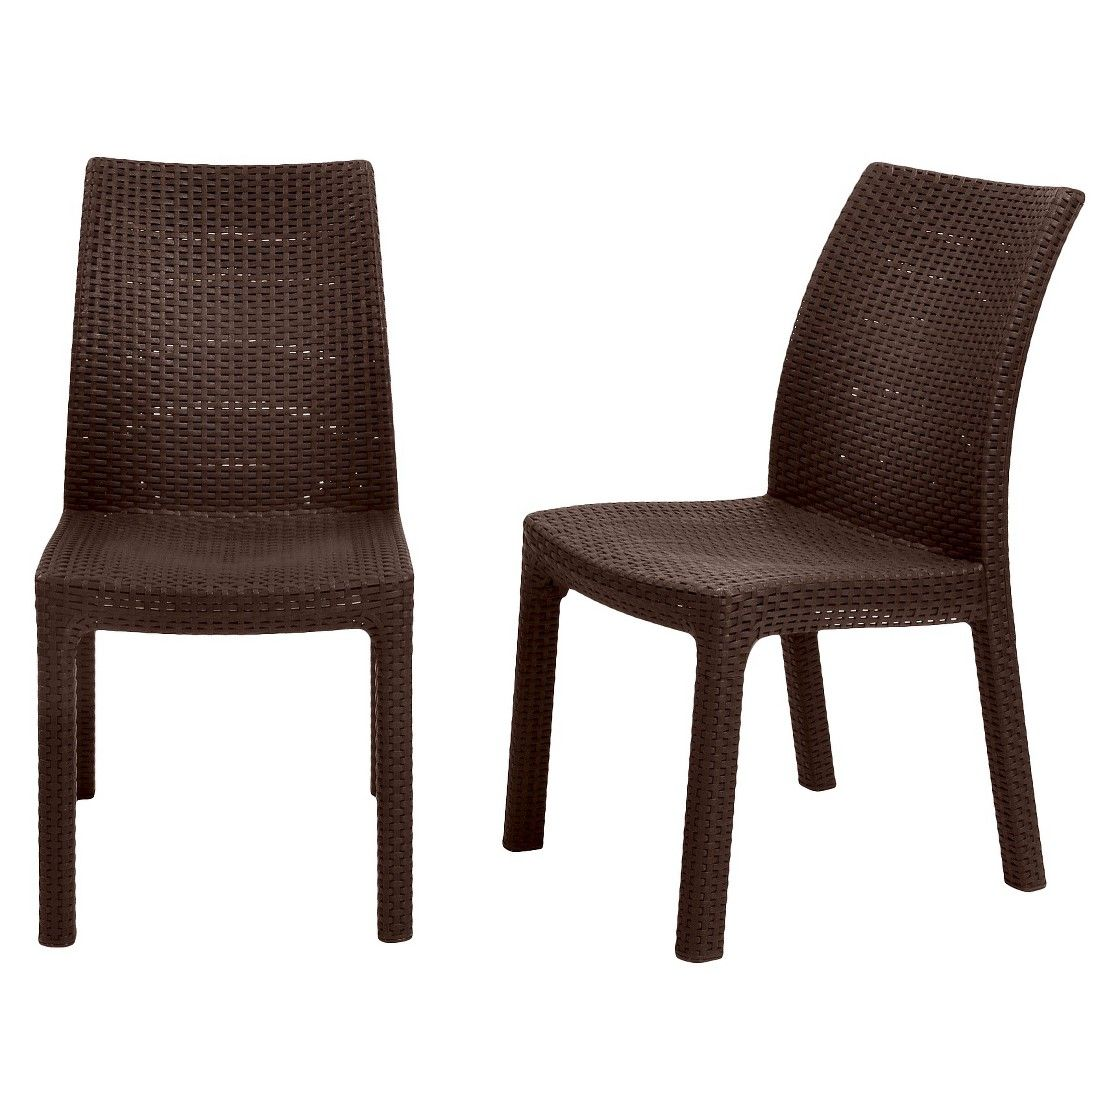 Milan Patio Dining Chair Target (With images) Outdoor